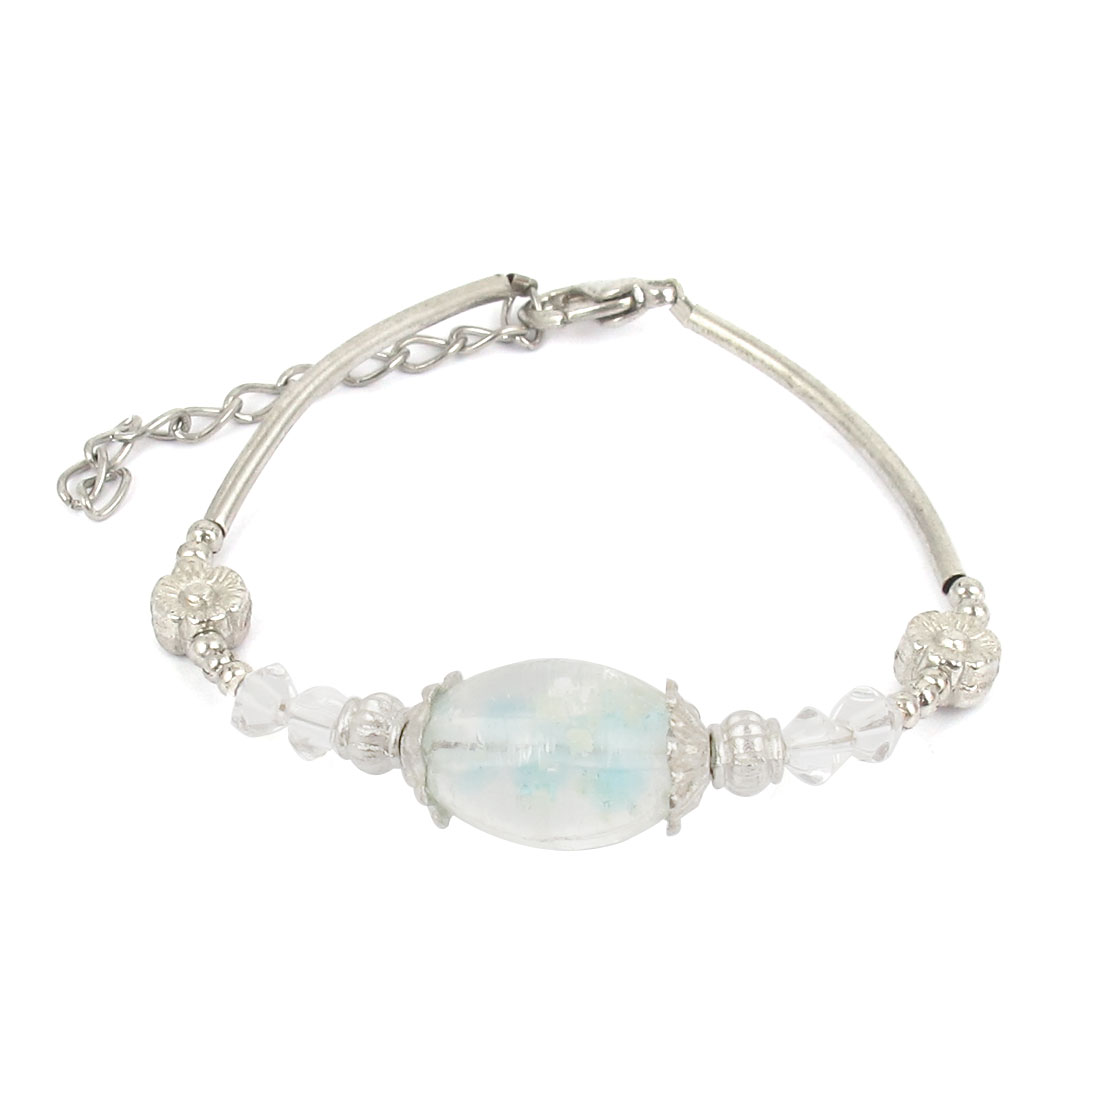 Women Lobster Clasp Link Oval Bead Detail Wrist Decoration Bracelet Bangle Clear